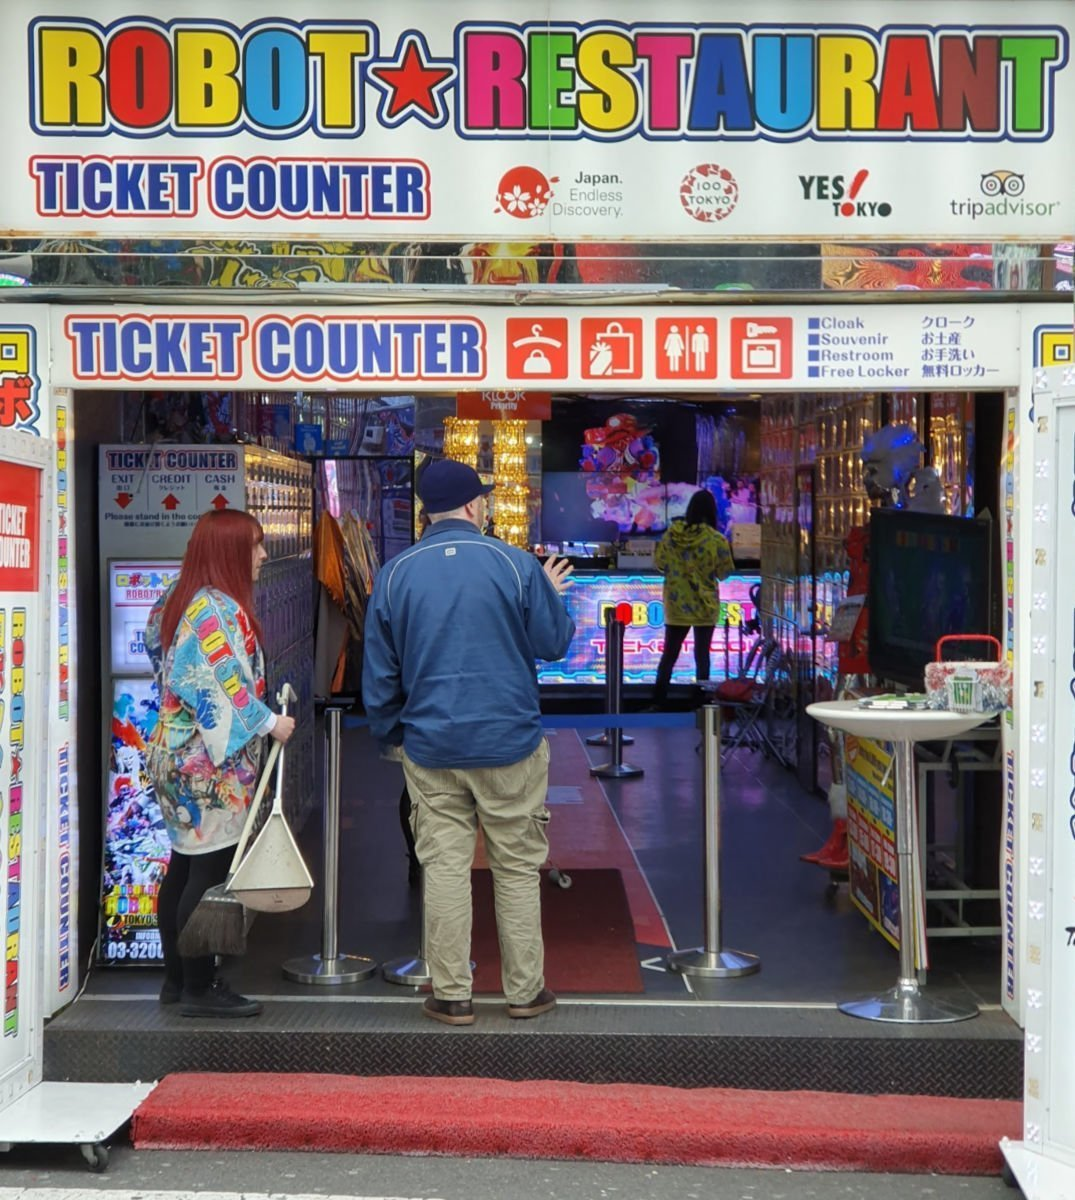 Robot Restaurant Ticket Counter